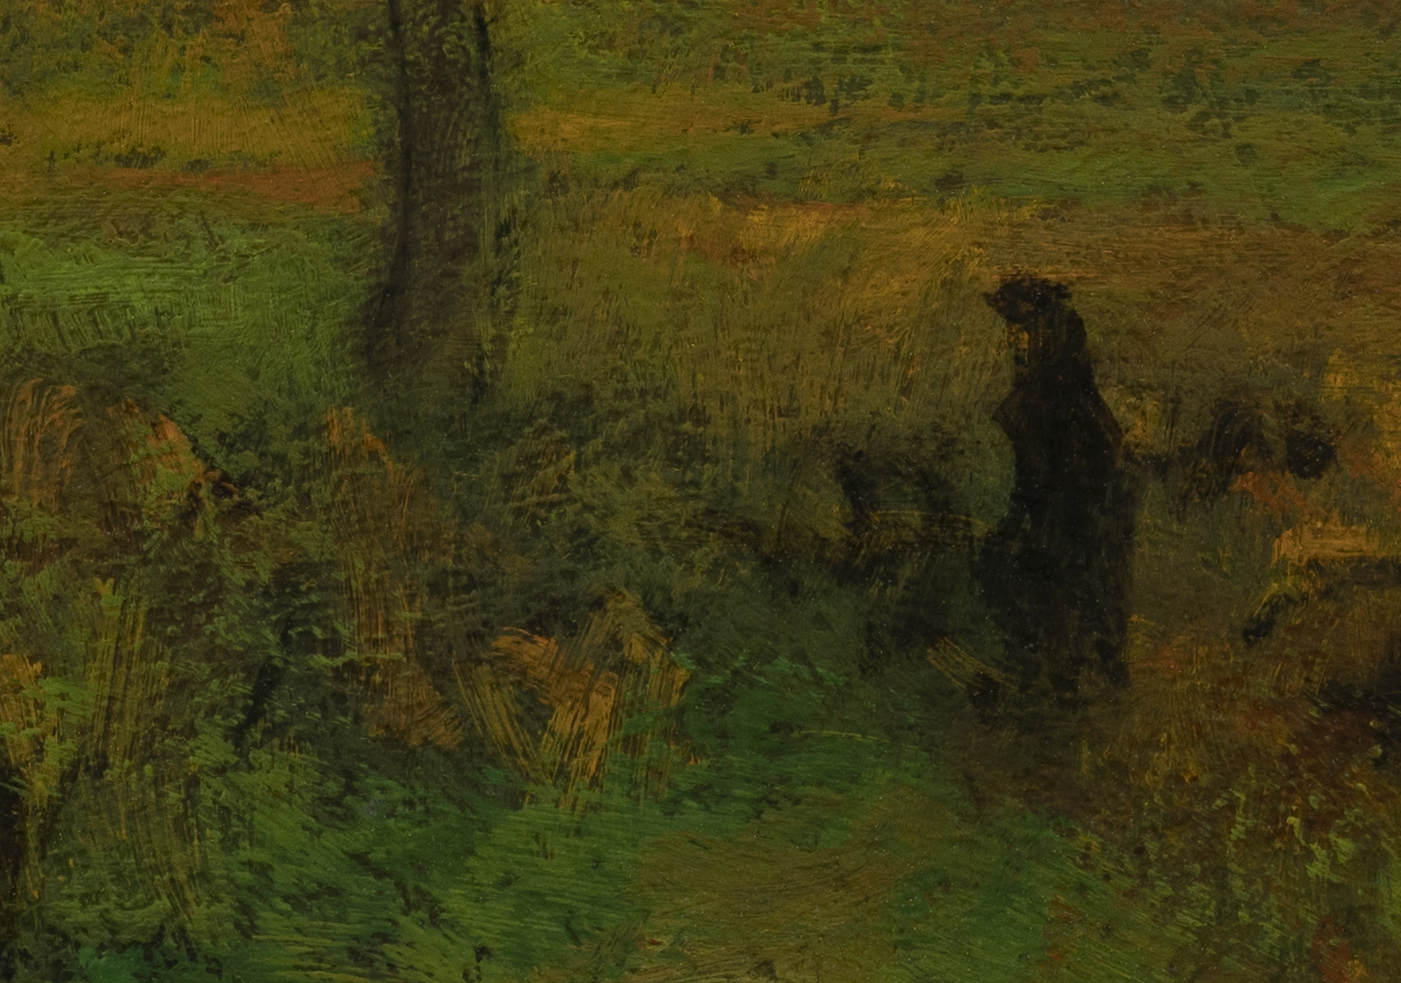 Study after George Inness - Sunrise by M Francis McCarthy - 7x10 (Detail 2)